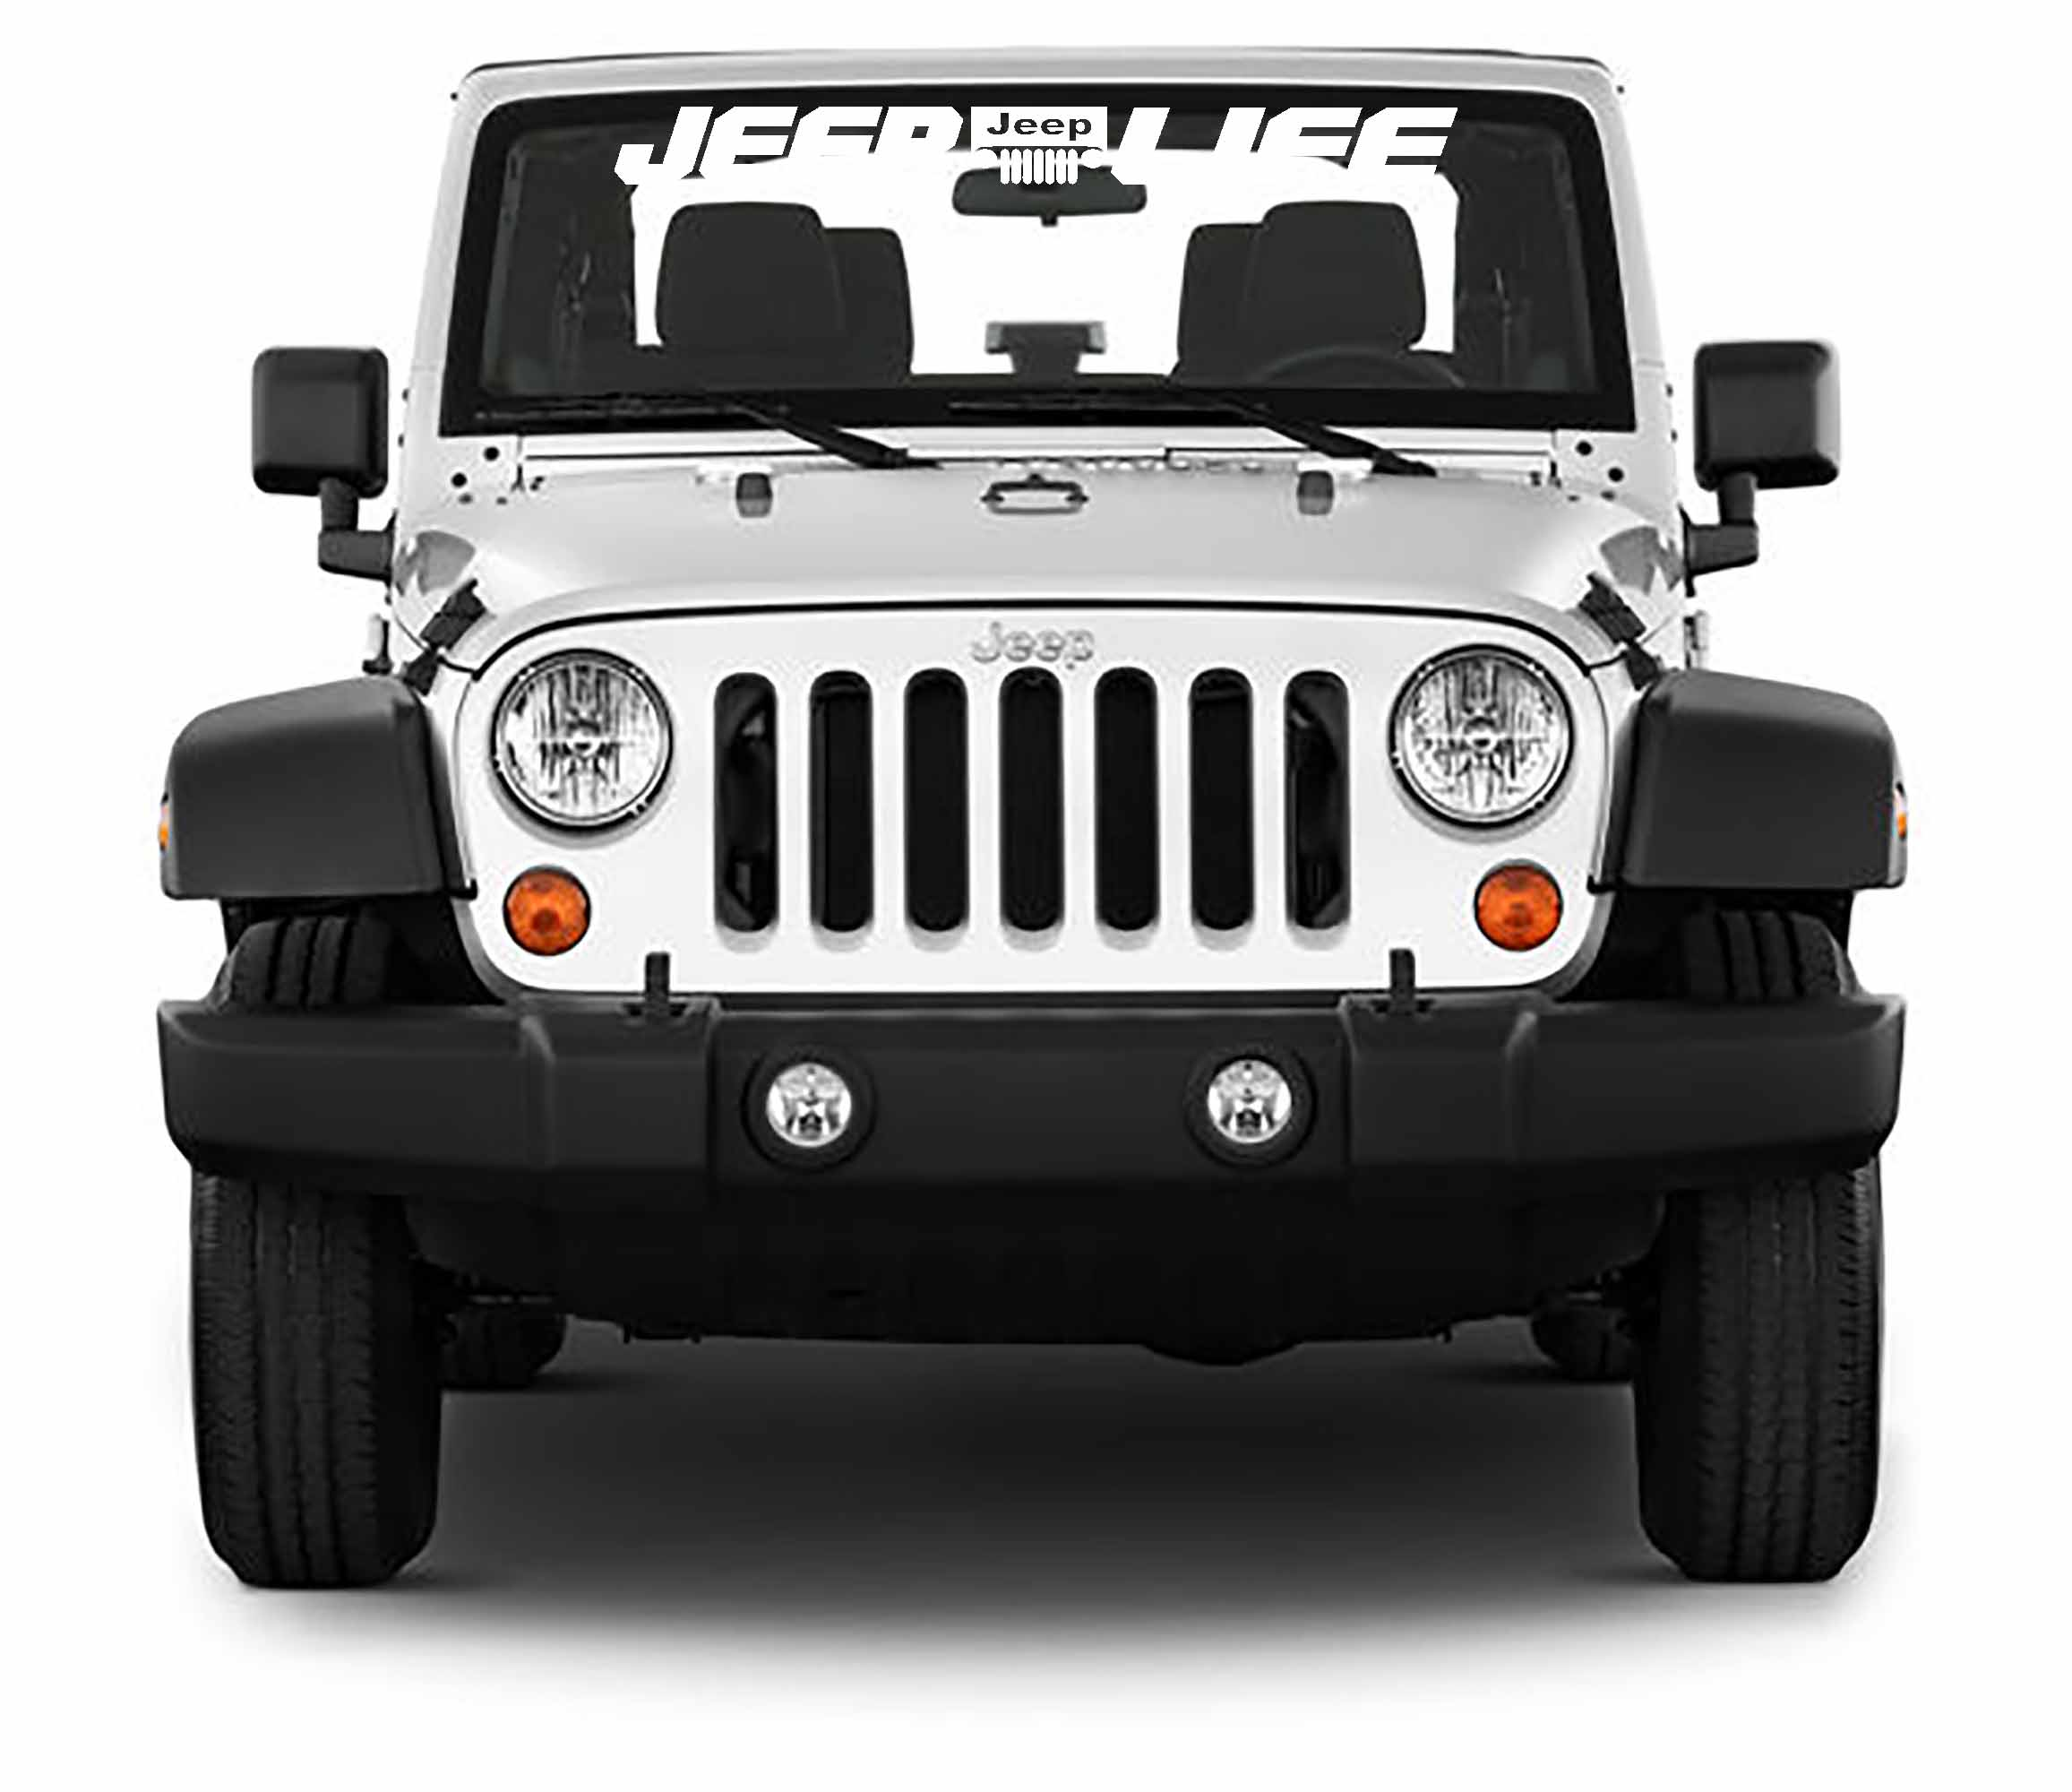 Jeep Wrangler Jeep Life Windshield Banner Vinyl Decal